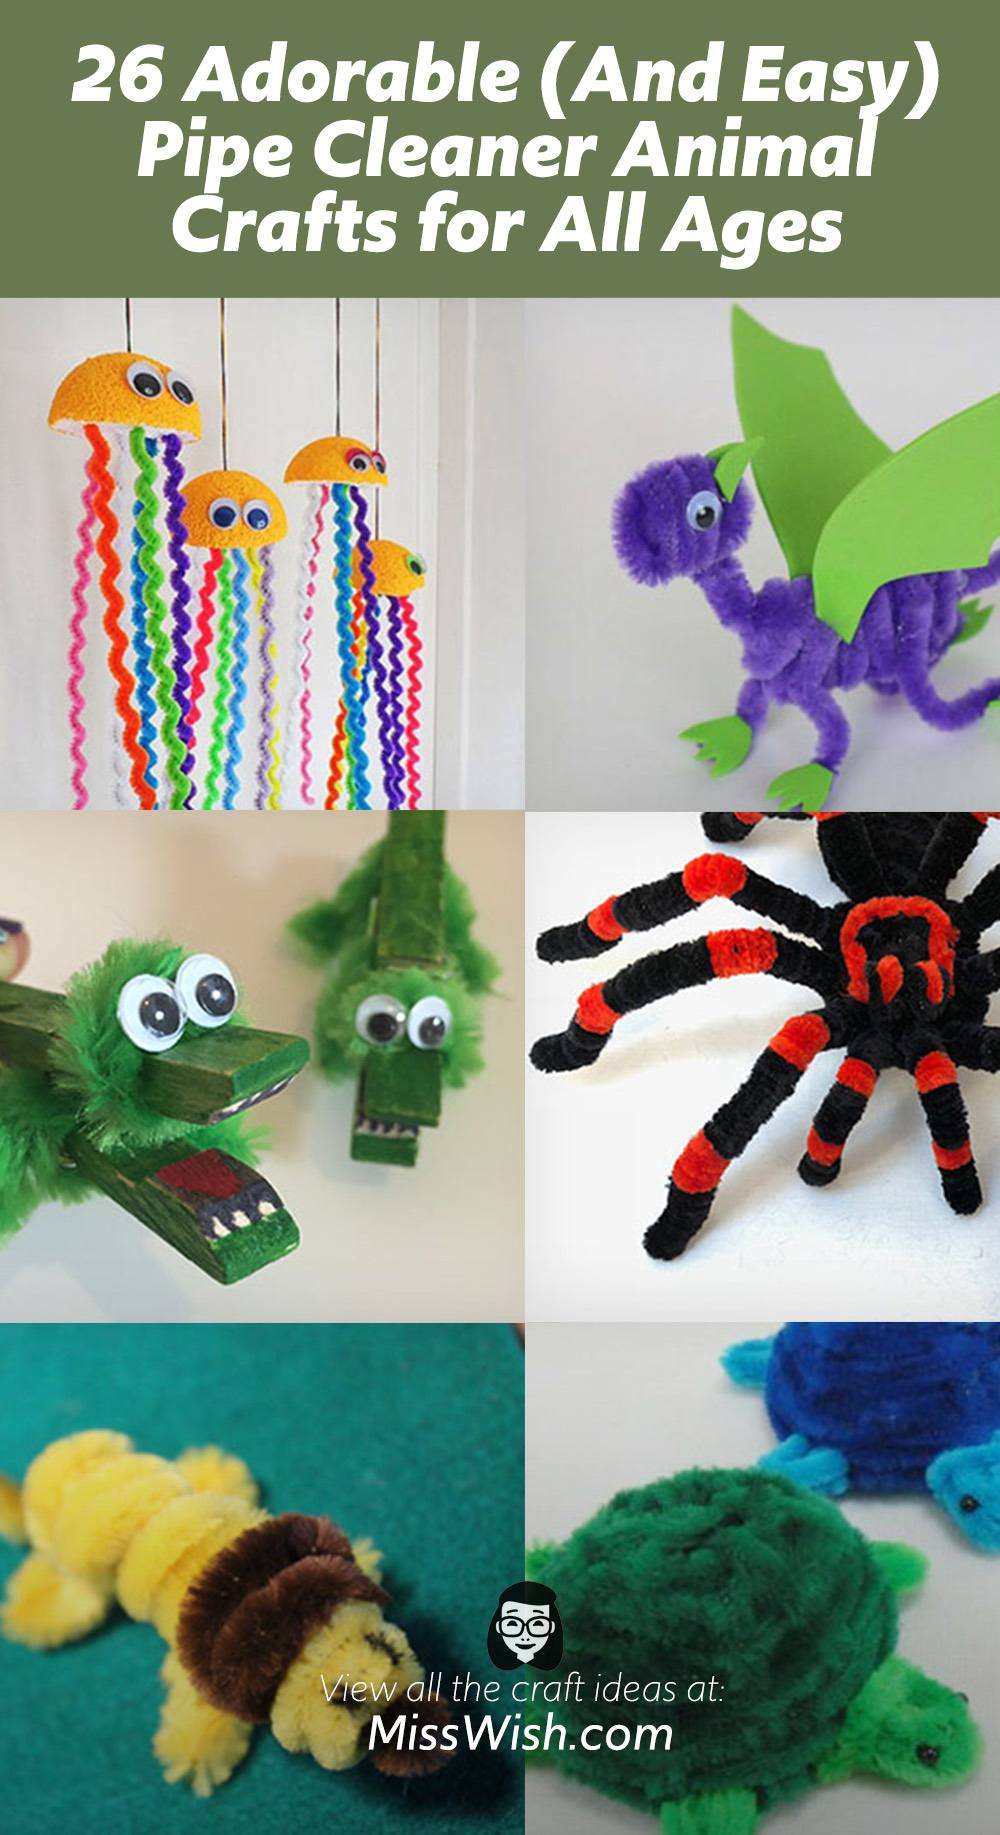 26 Adorable and Easy Pipe Cleaner Animal Crafts for All Ages